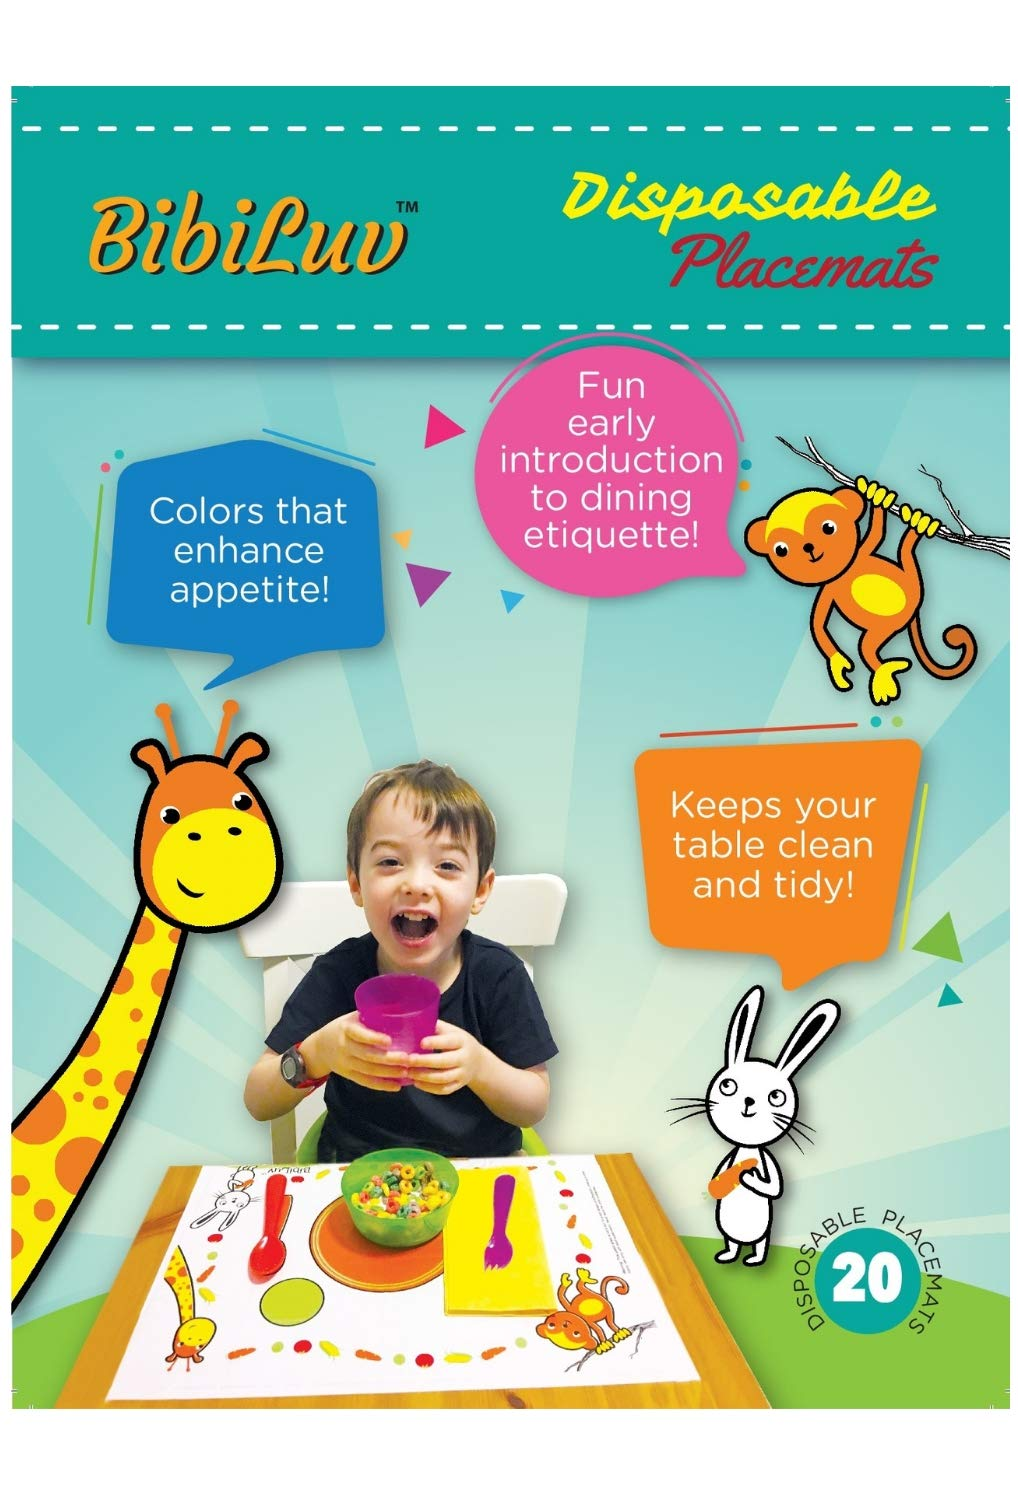 Sticky Adhesive Disposable Placemats Baby 60 Count Stick-on Kids Table Toppers Feeding Mat for Toddlers Children Mealtimes BPA Free Plastic by BibiLuv